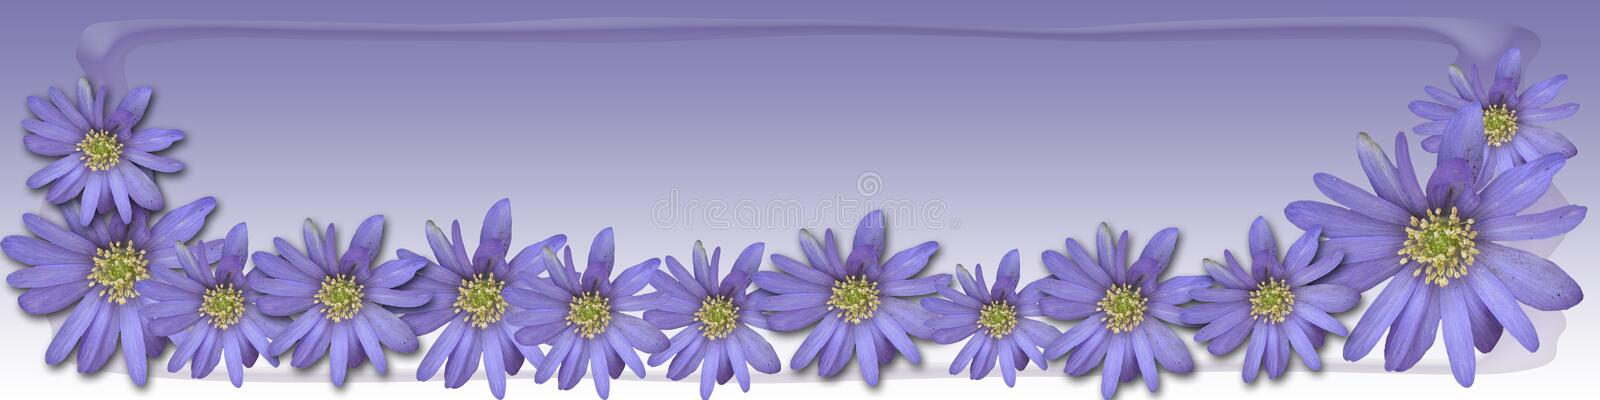 Lavender spring. Banner / header / background in lavender tones with cute little anemone / spring flowers royalty free illustration